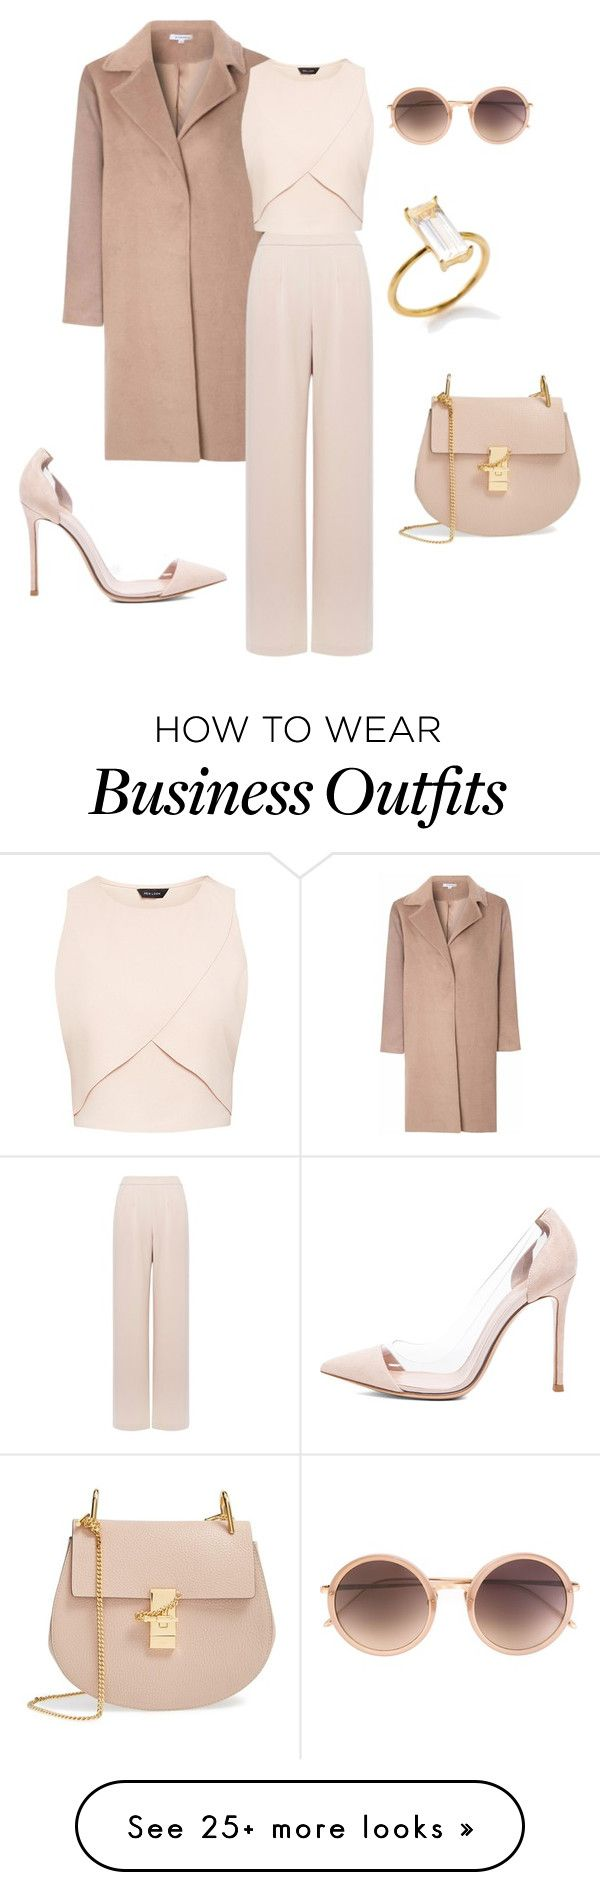 """Work wear in blush"" by bshujewelry on Polyvore featuring Glamorous, Coast, Gianvito Rossi, Chloé, Linda Farrow, women's clothing, women, female, woman and misses"